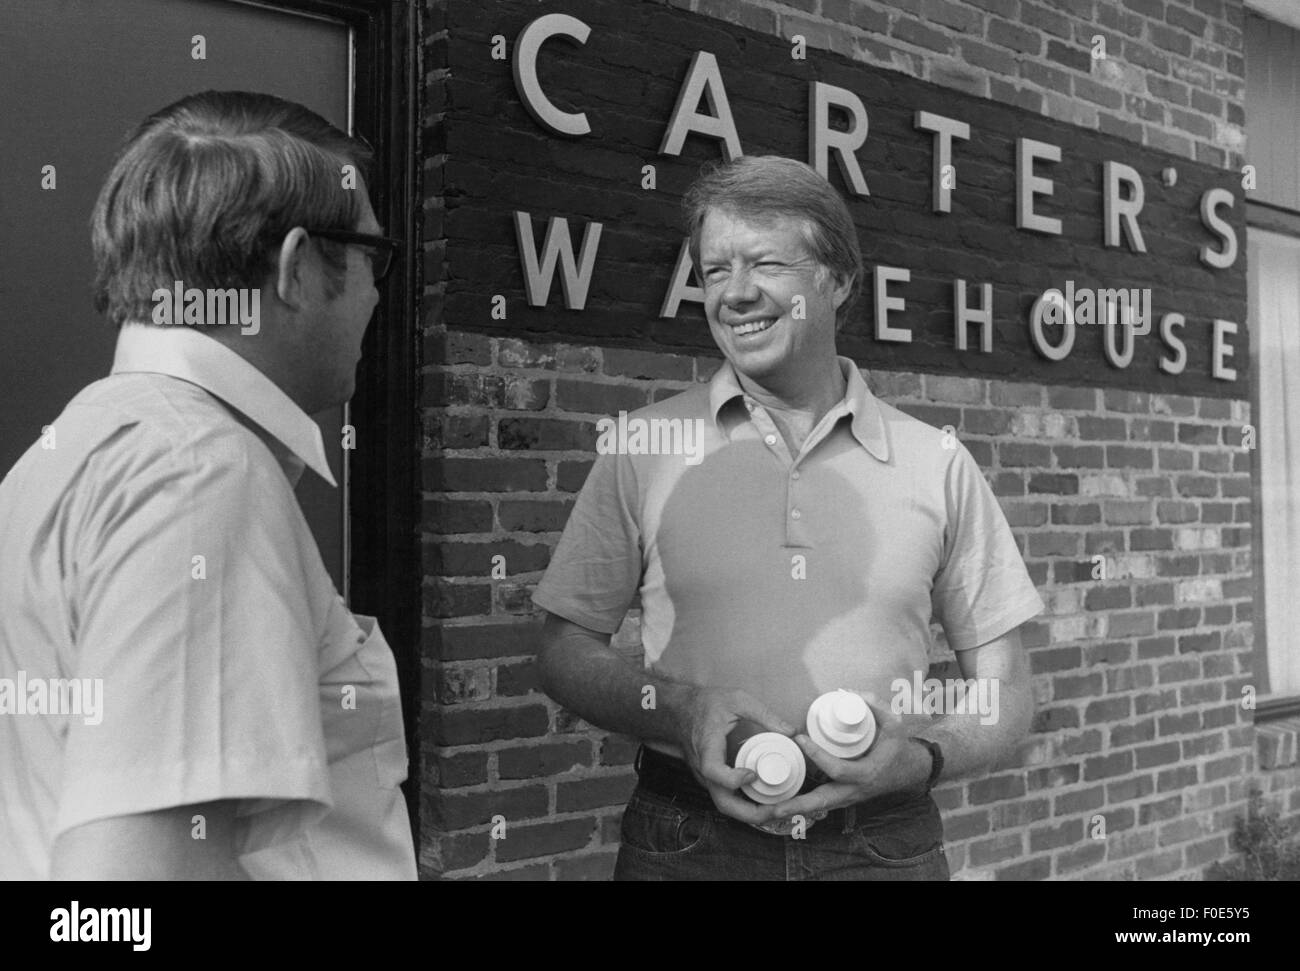 Jimmy and Brother Billy Carter at Carters Warehouse in Plains, Georgia. The brothers also own agricultural land - Stock Image